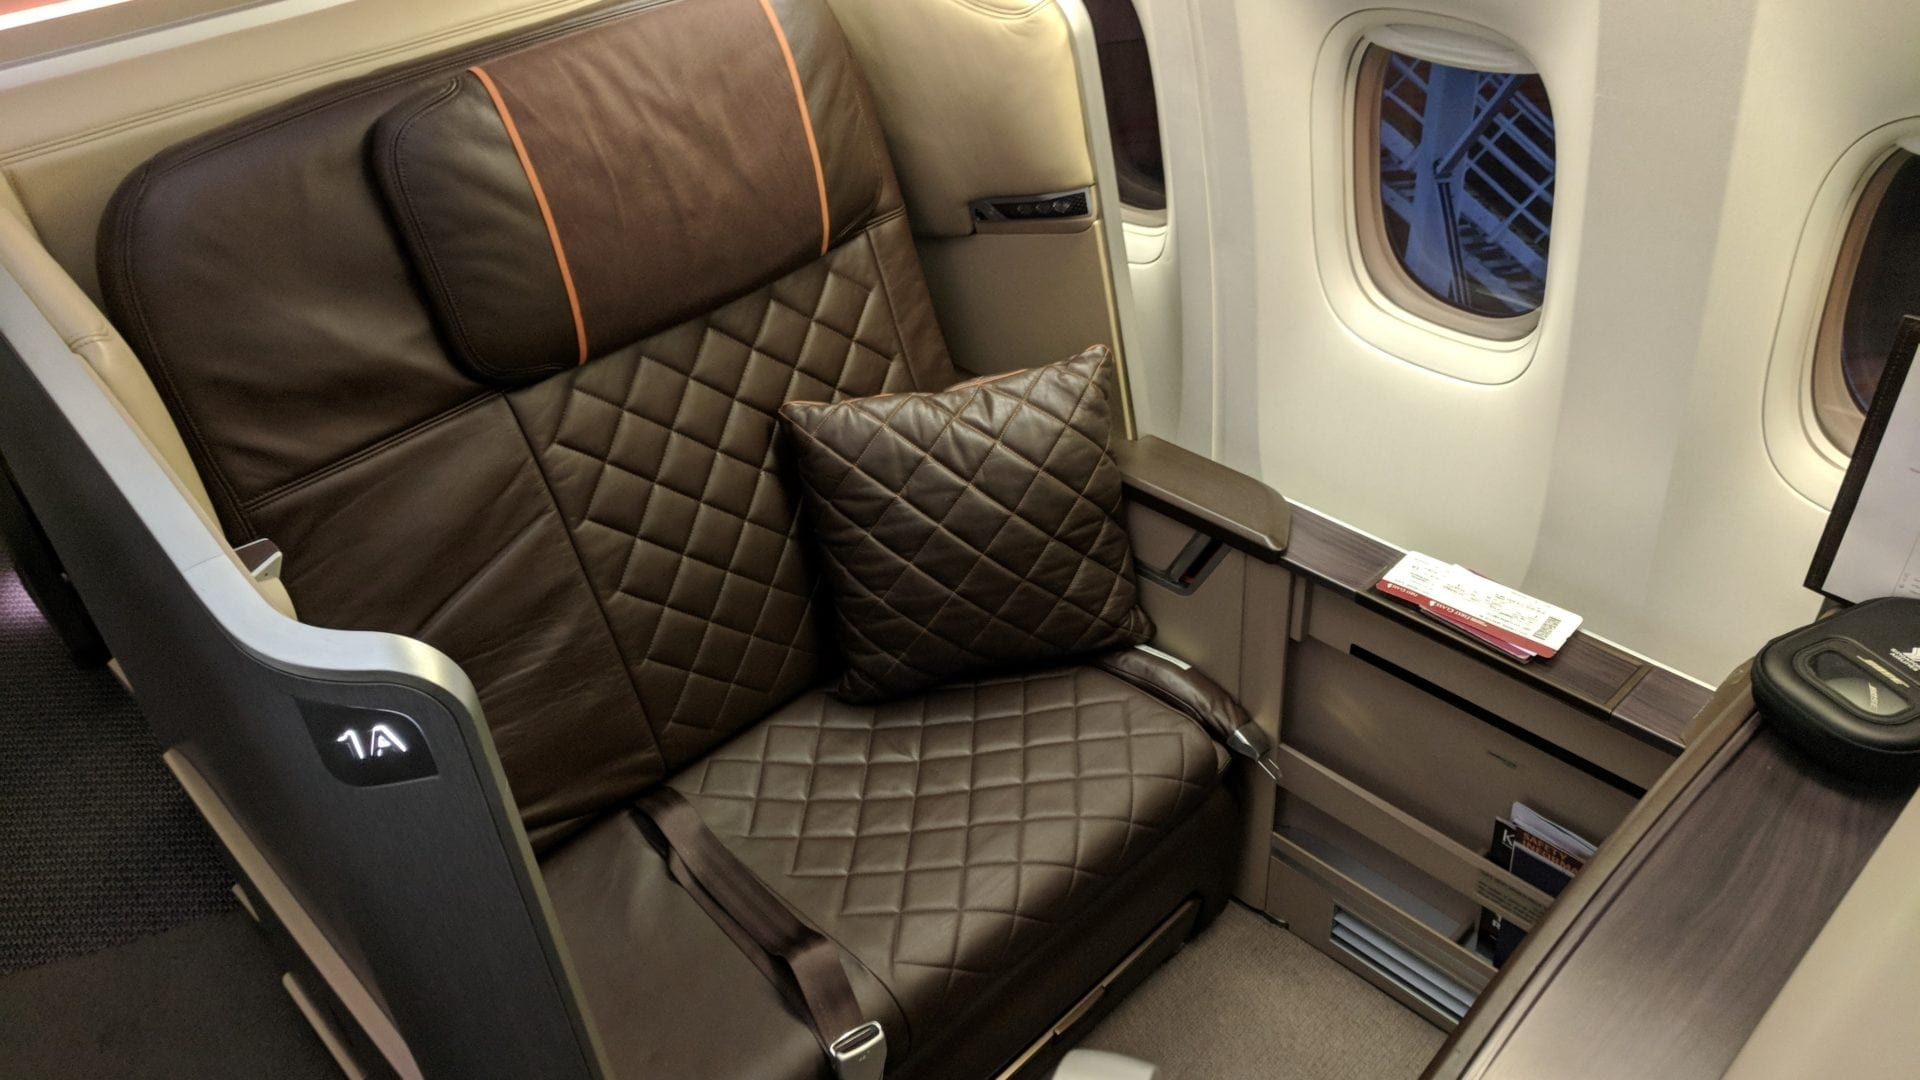 Singapore Airlines First Class Sitz (3)